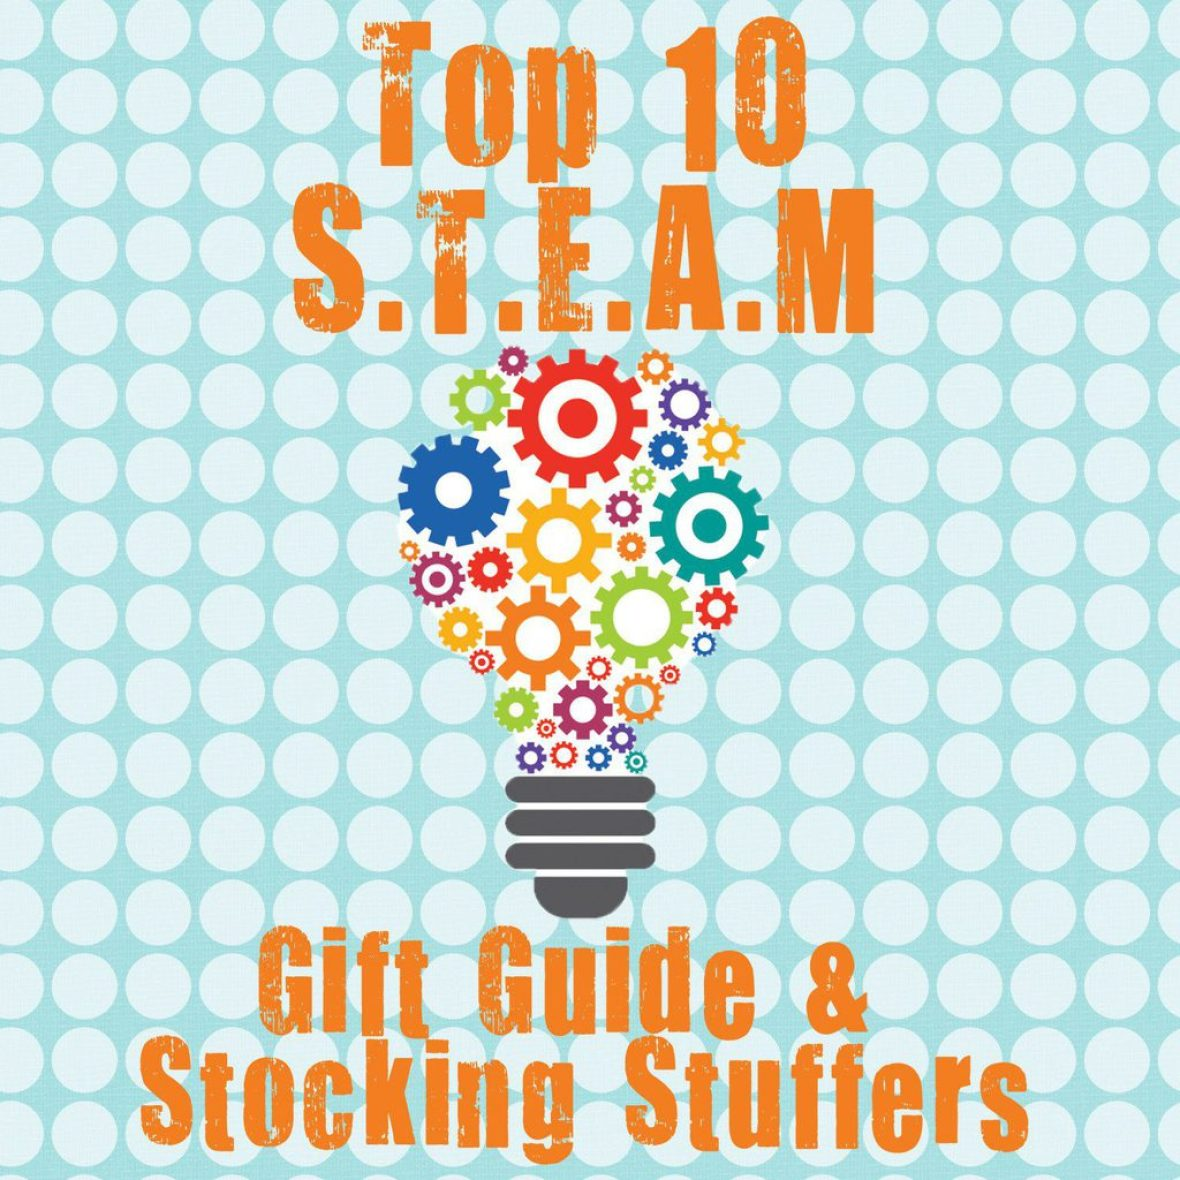 Top 10 S.T.E.A.M Gift Guide and Stocking Stuffers | Five Marigolds